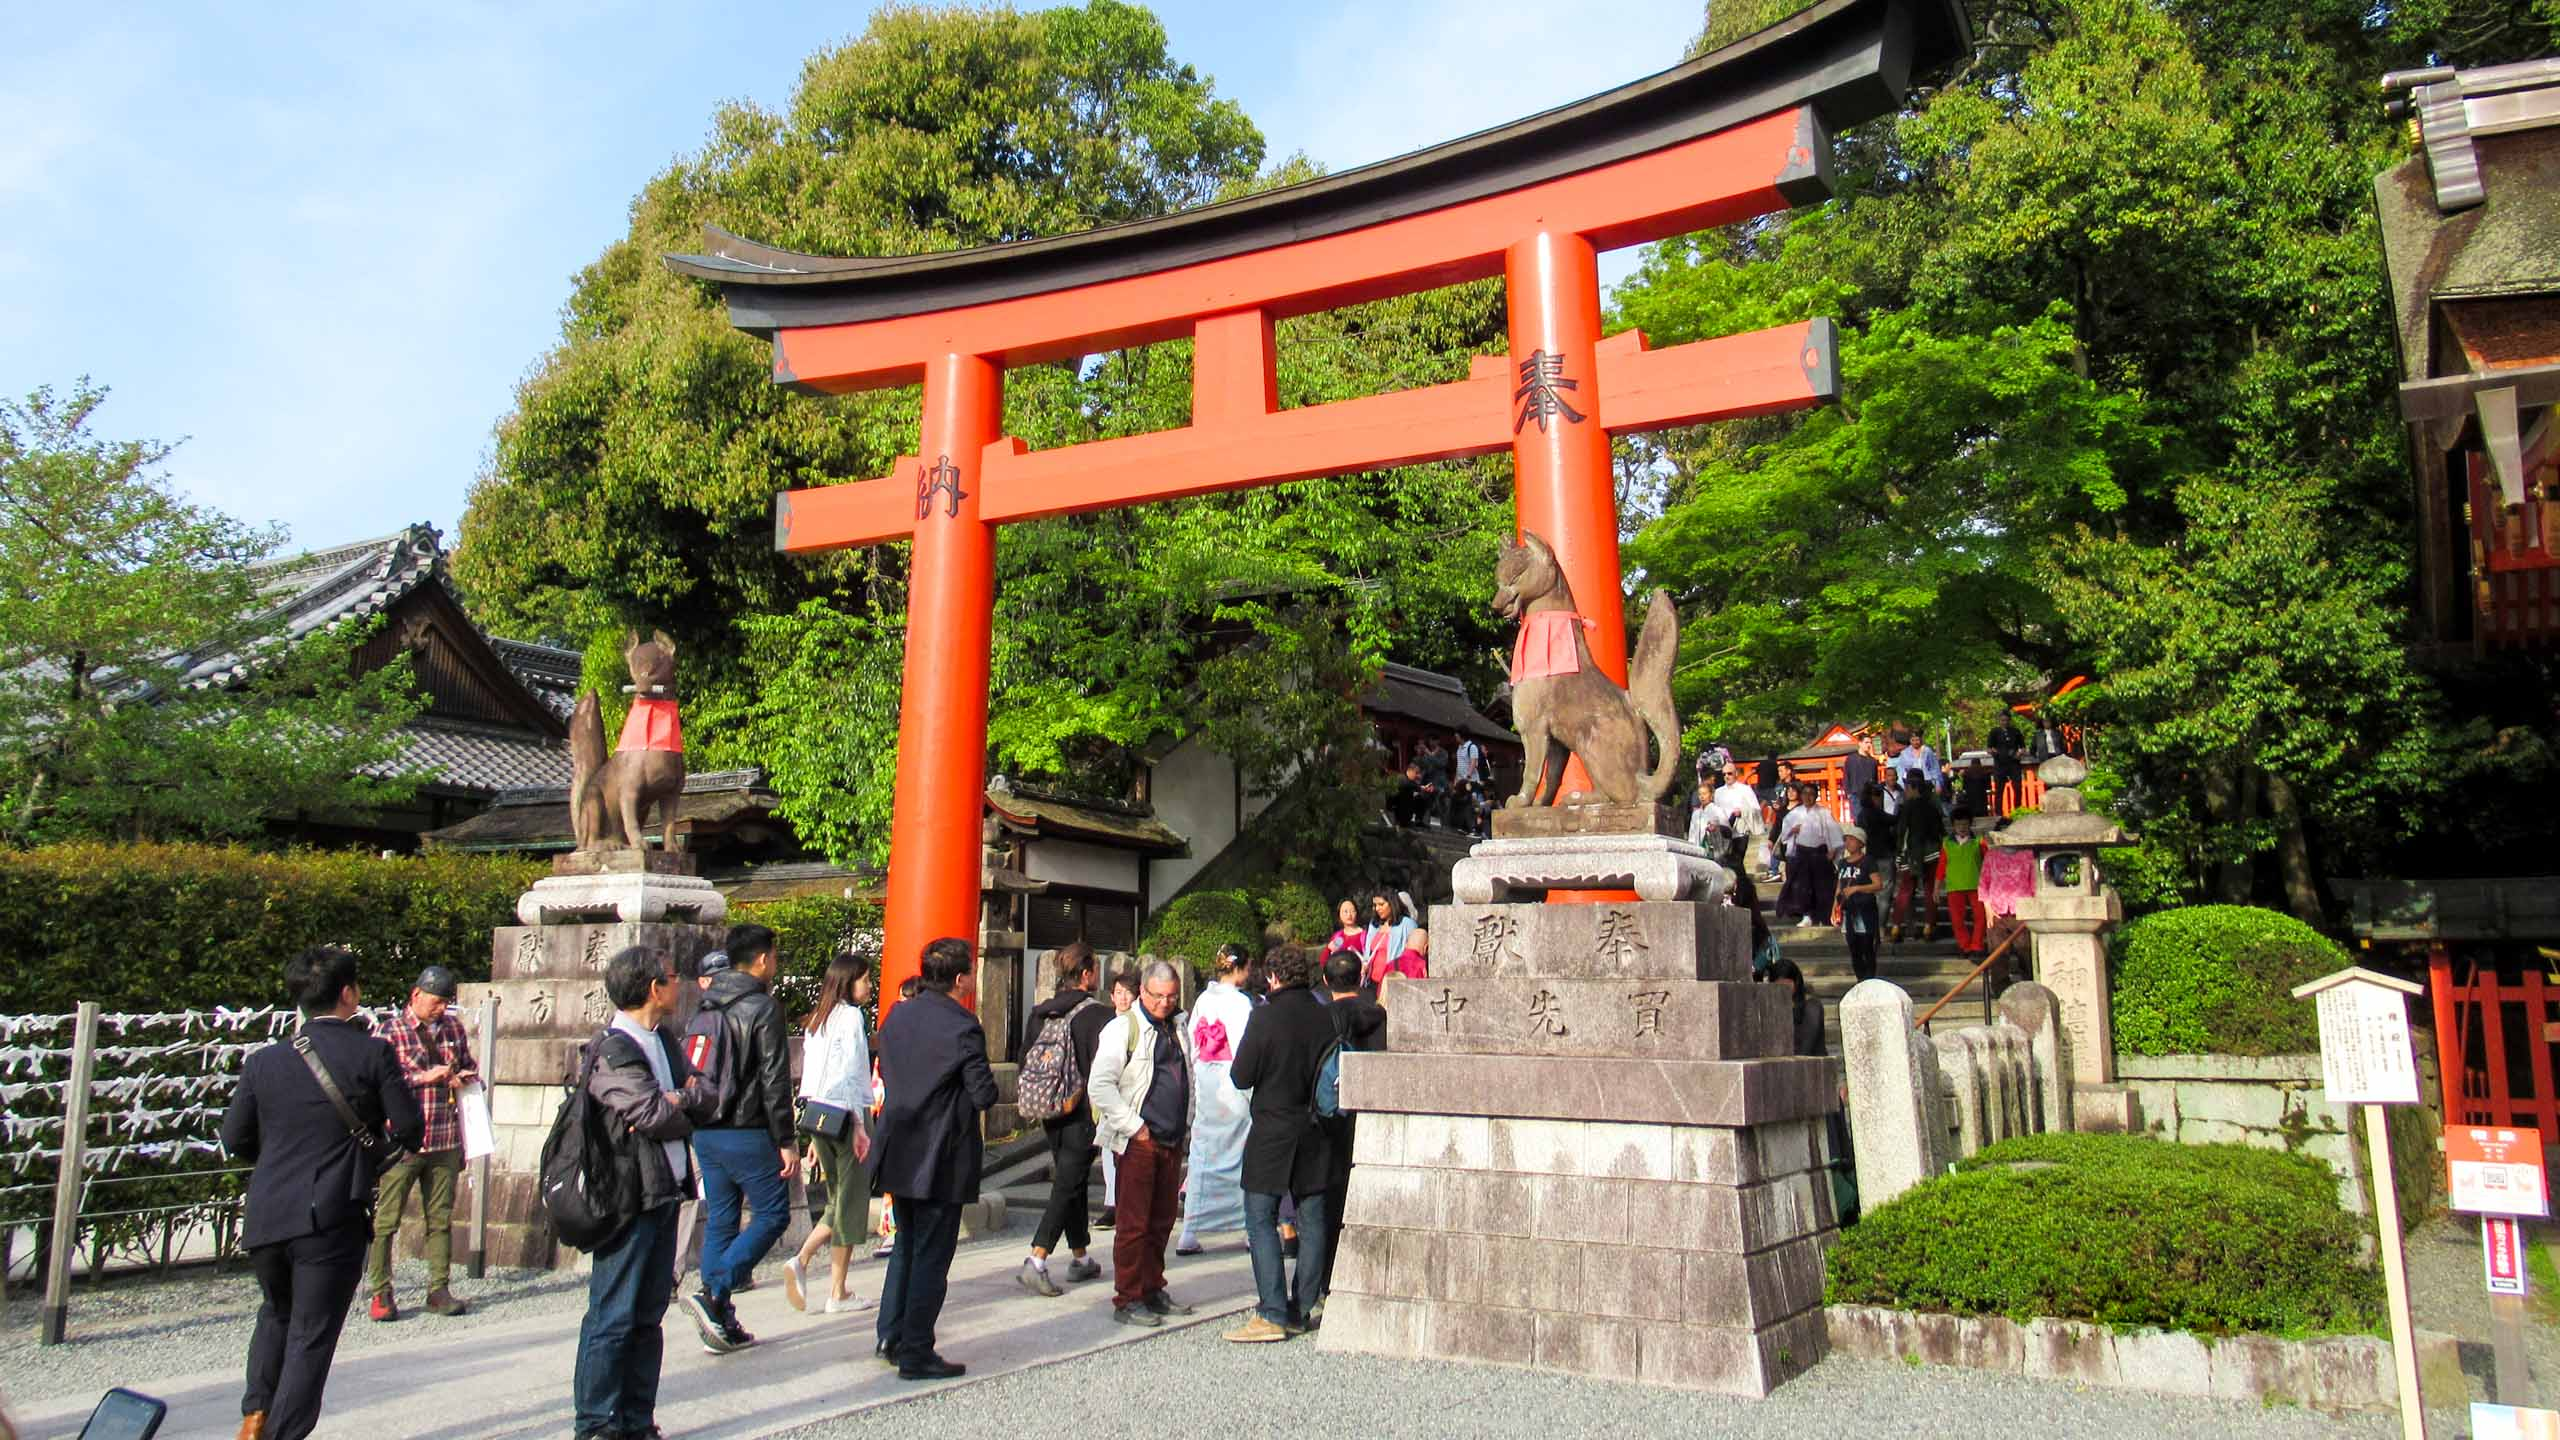 Groups of travelers walk under red Japanese archway